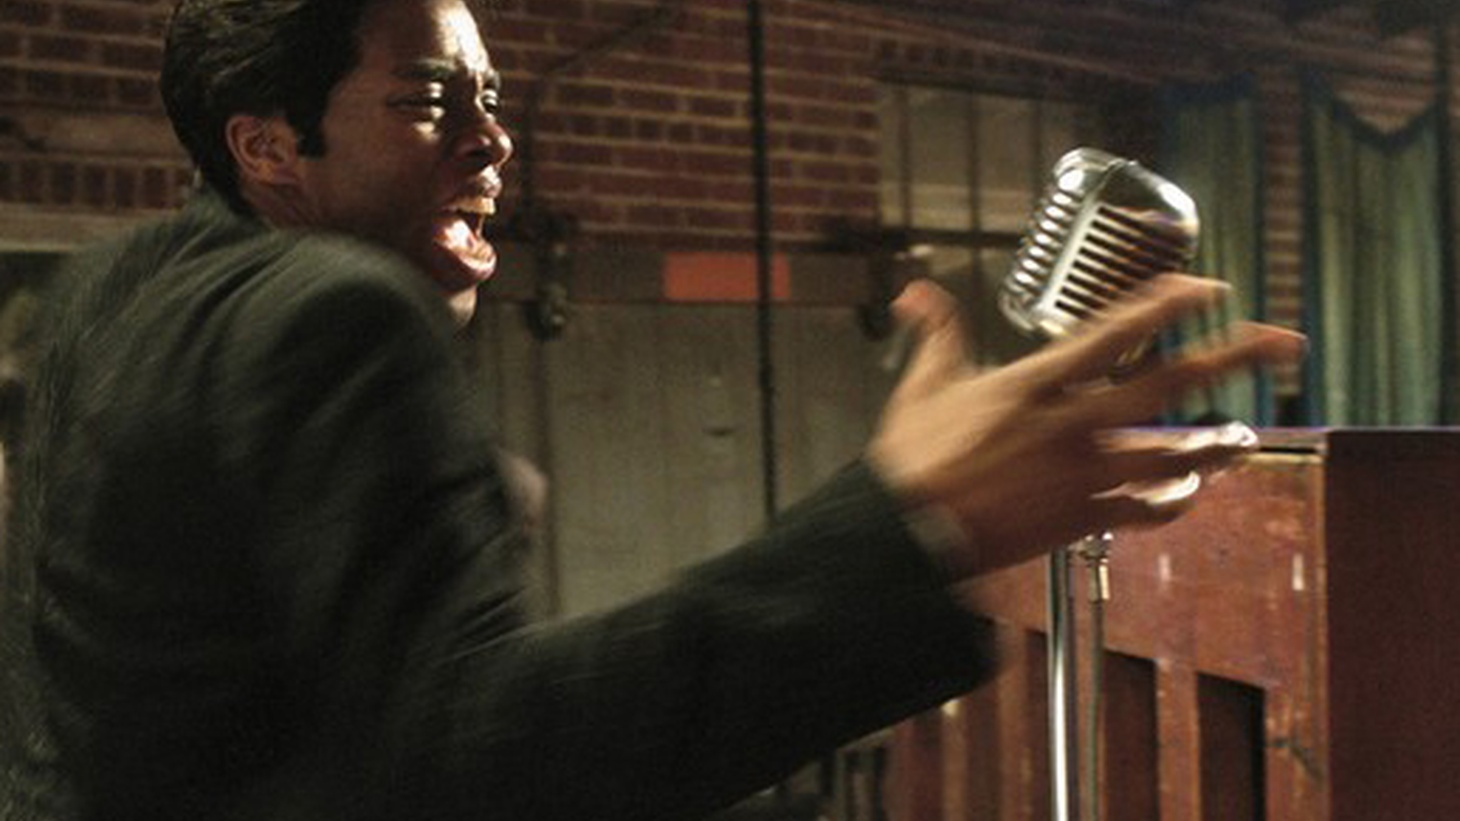 Get On Up is about the transformative power of performance. James Brown was a performer of legendary gifts, immeasurable influence and almost infinitely renewable energy.